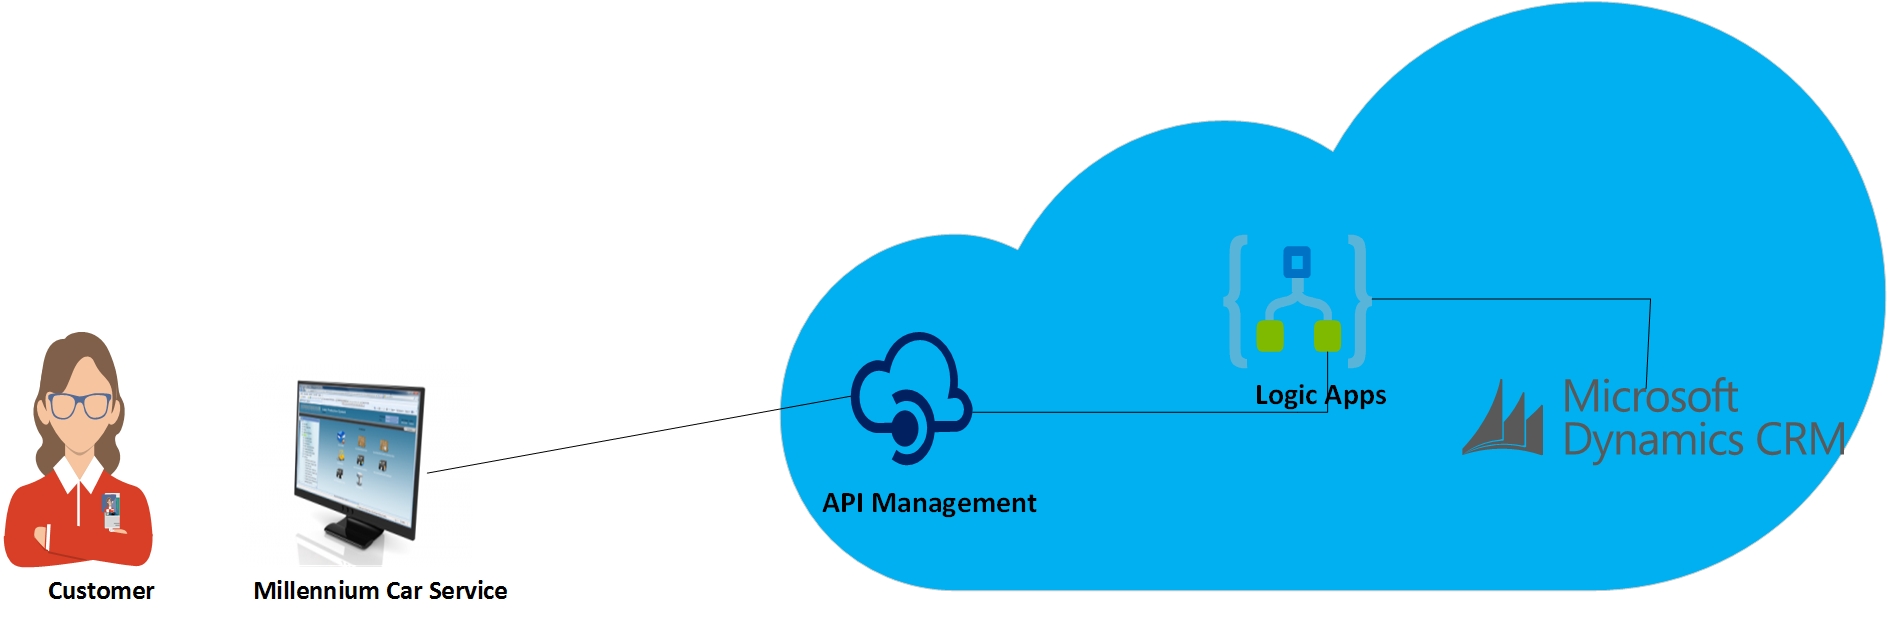 Secure Logic App endpoint with API Management - TechNet Articles